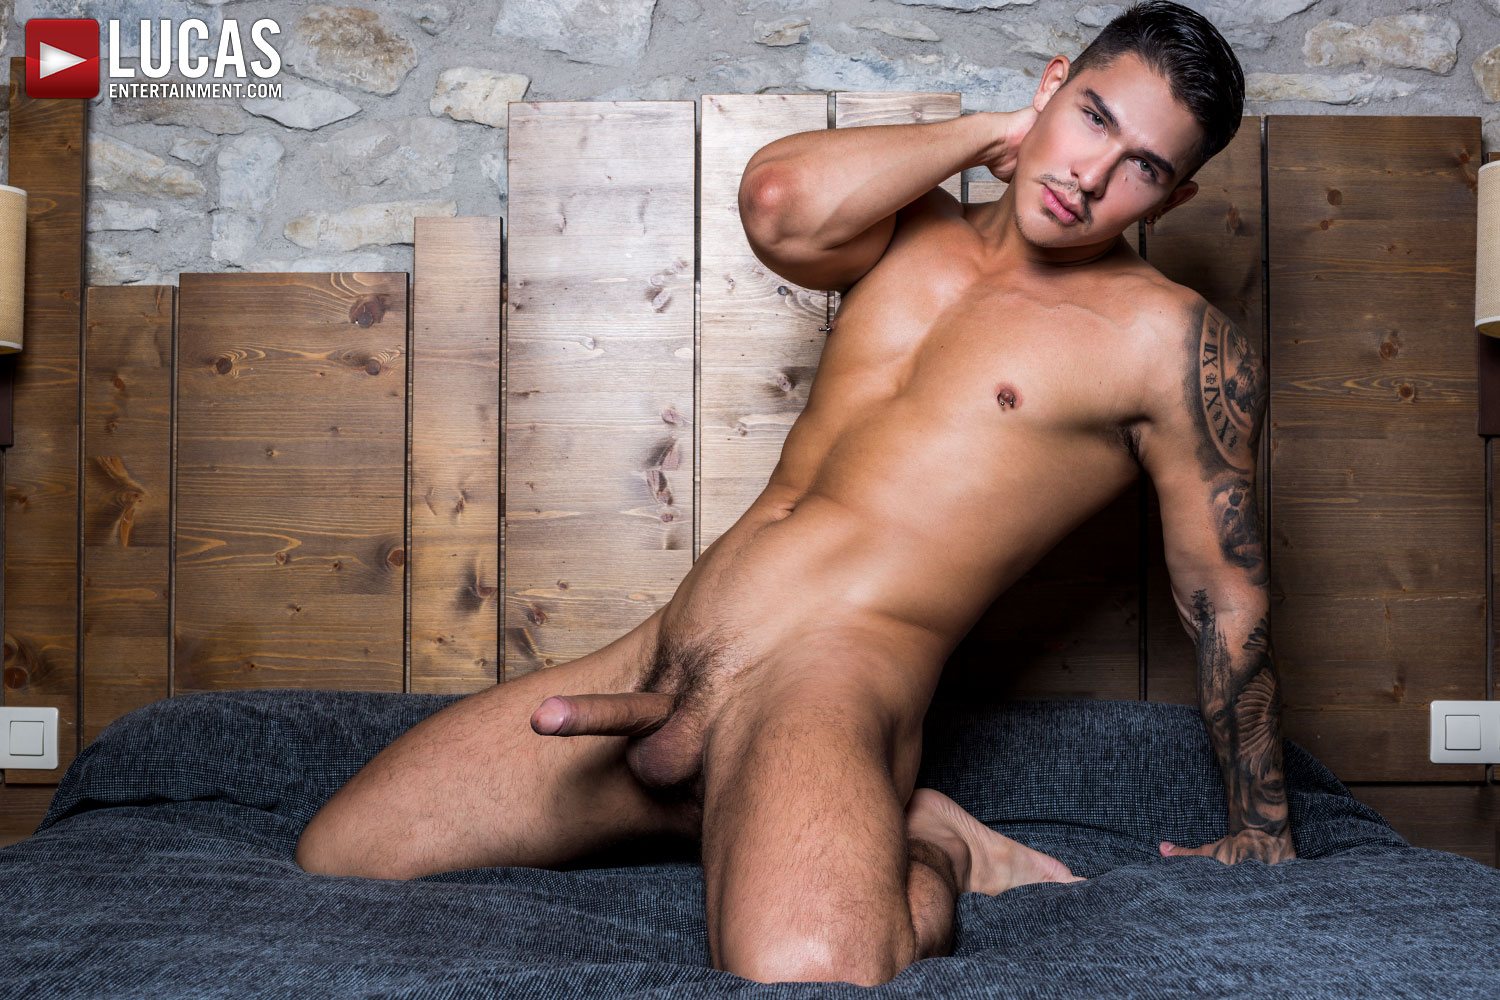 Apolo Fire - Gay Model - Lucas Entertainment